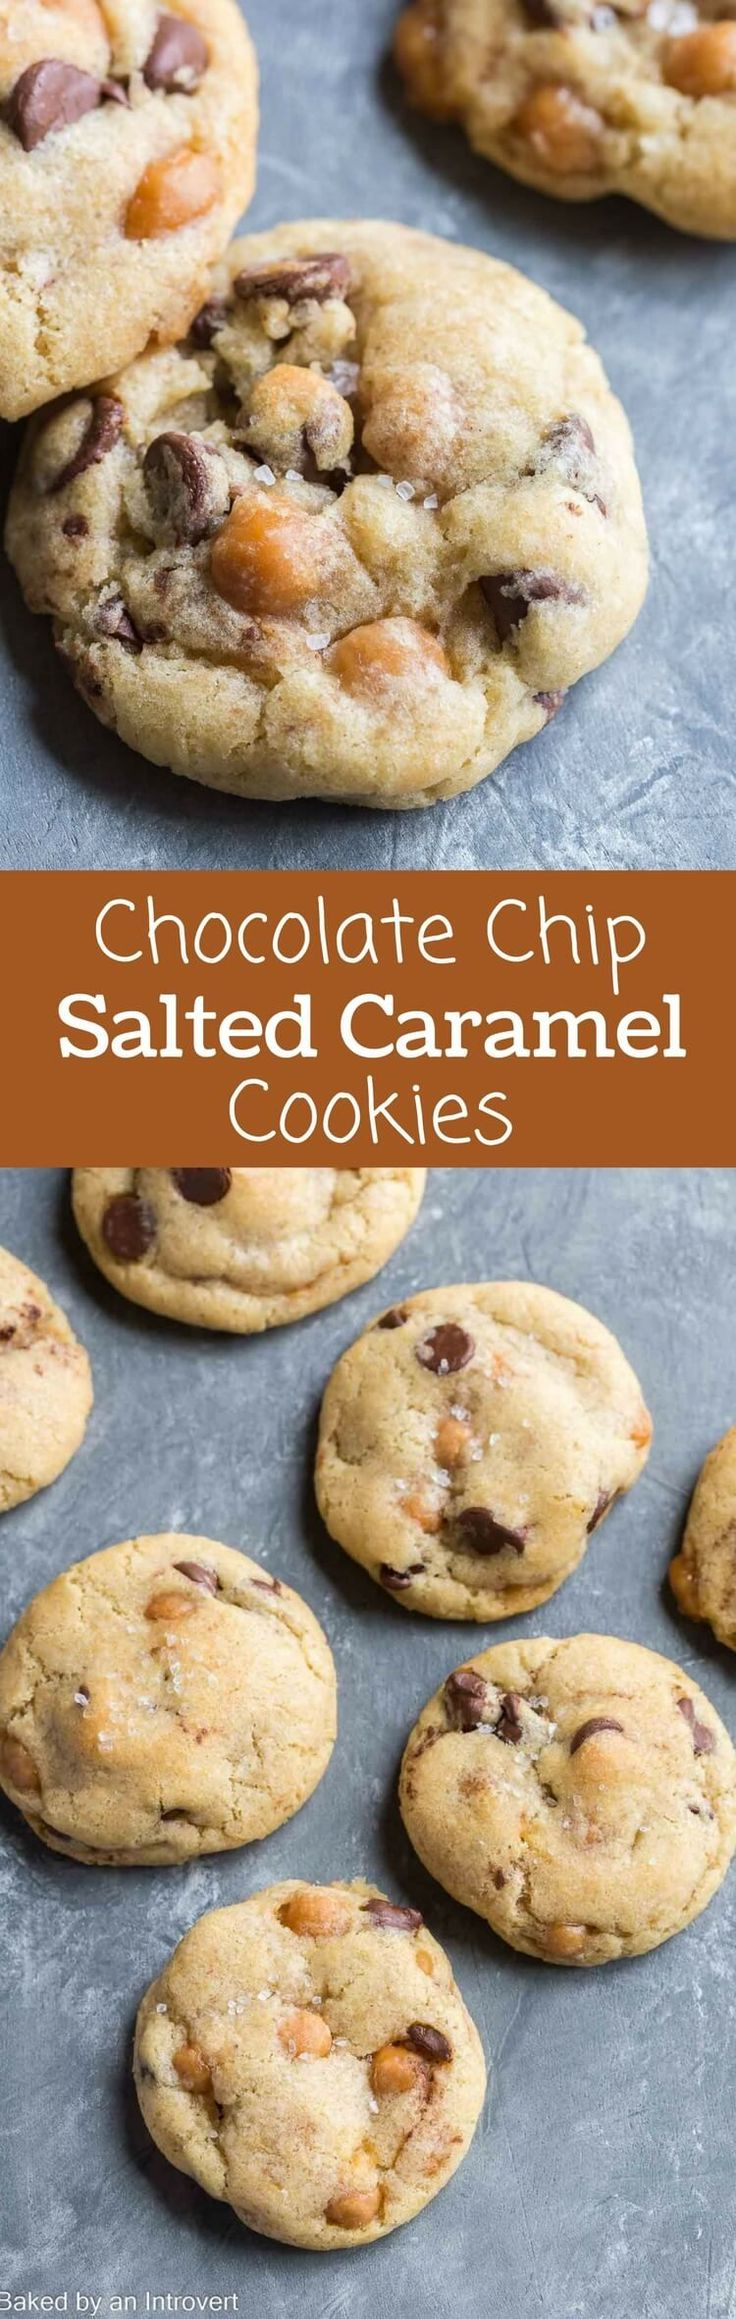 Soft and chewy Chocolate Chip Salted Caramel Cookies combine everyone's favorite flavors!  #cookies #saltedcaramel #chocolate